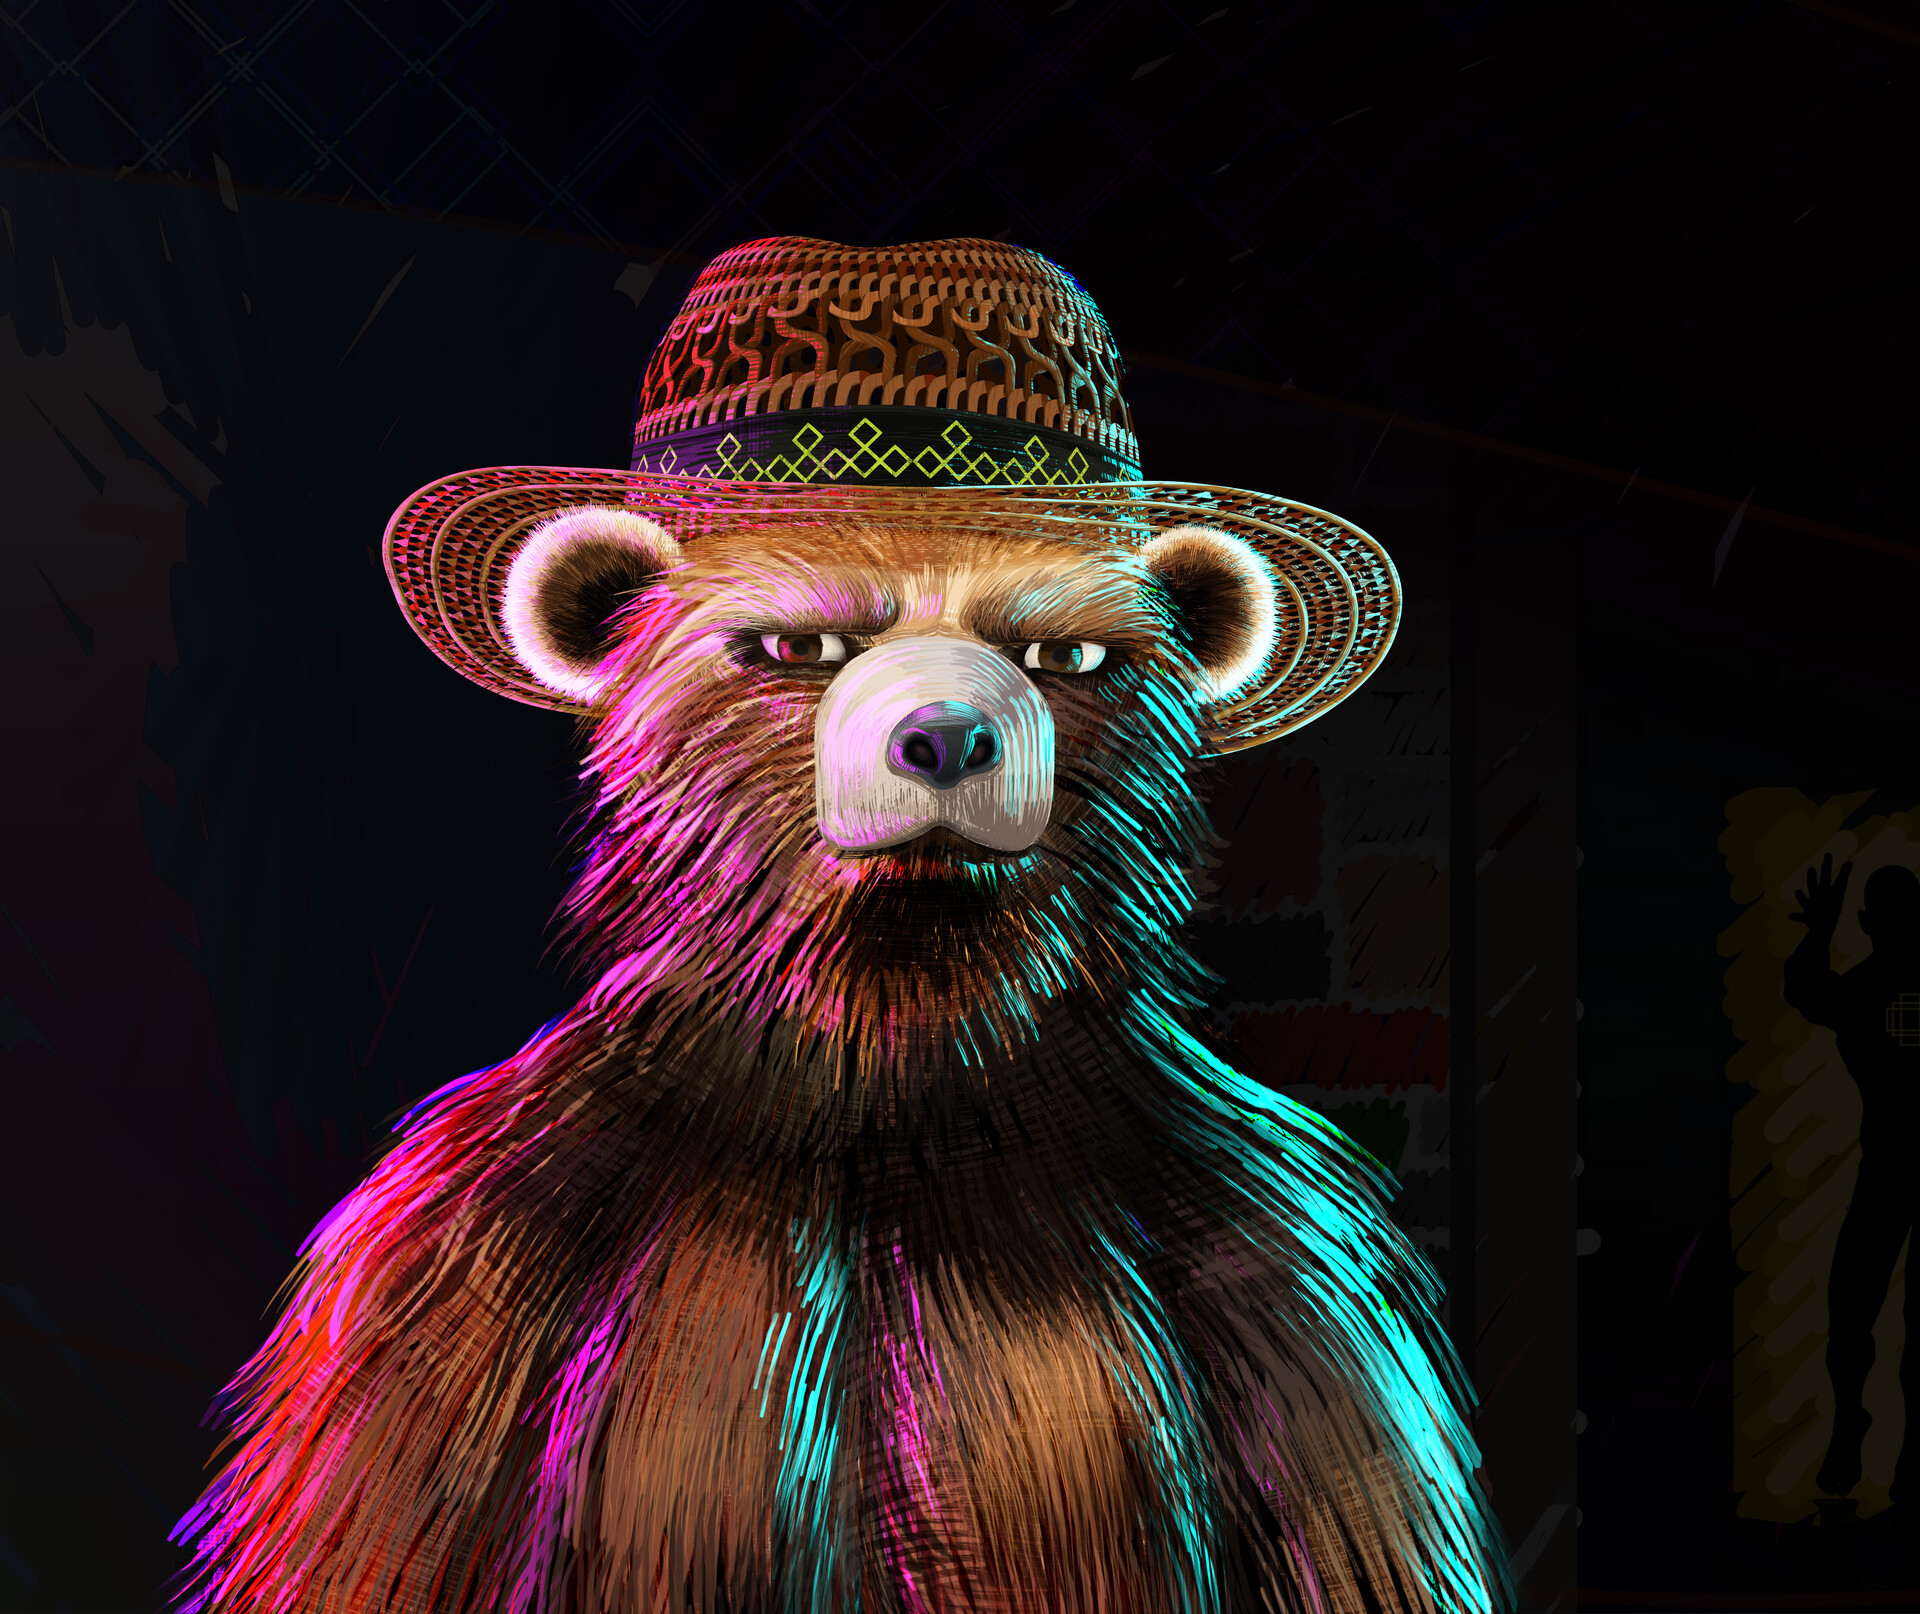 """""""I don't trust any of this."""" ~Thoughts from Bear in Hat"""